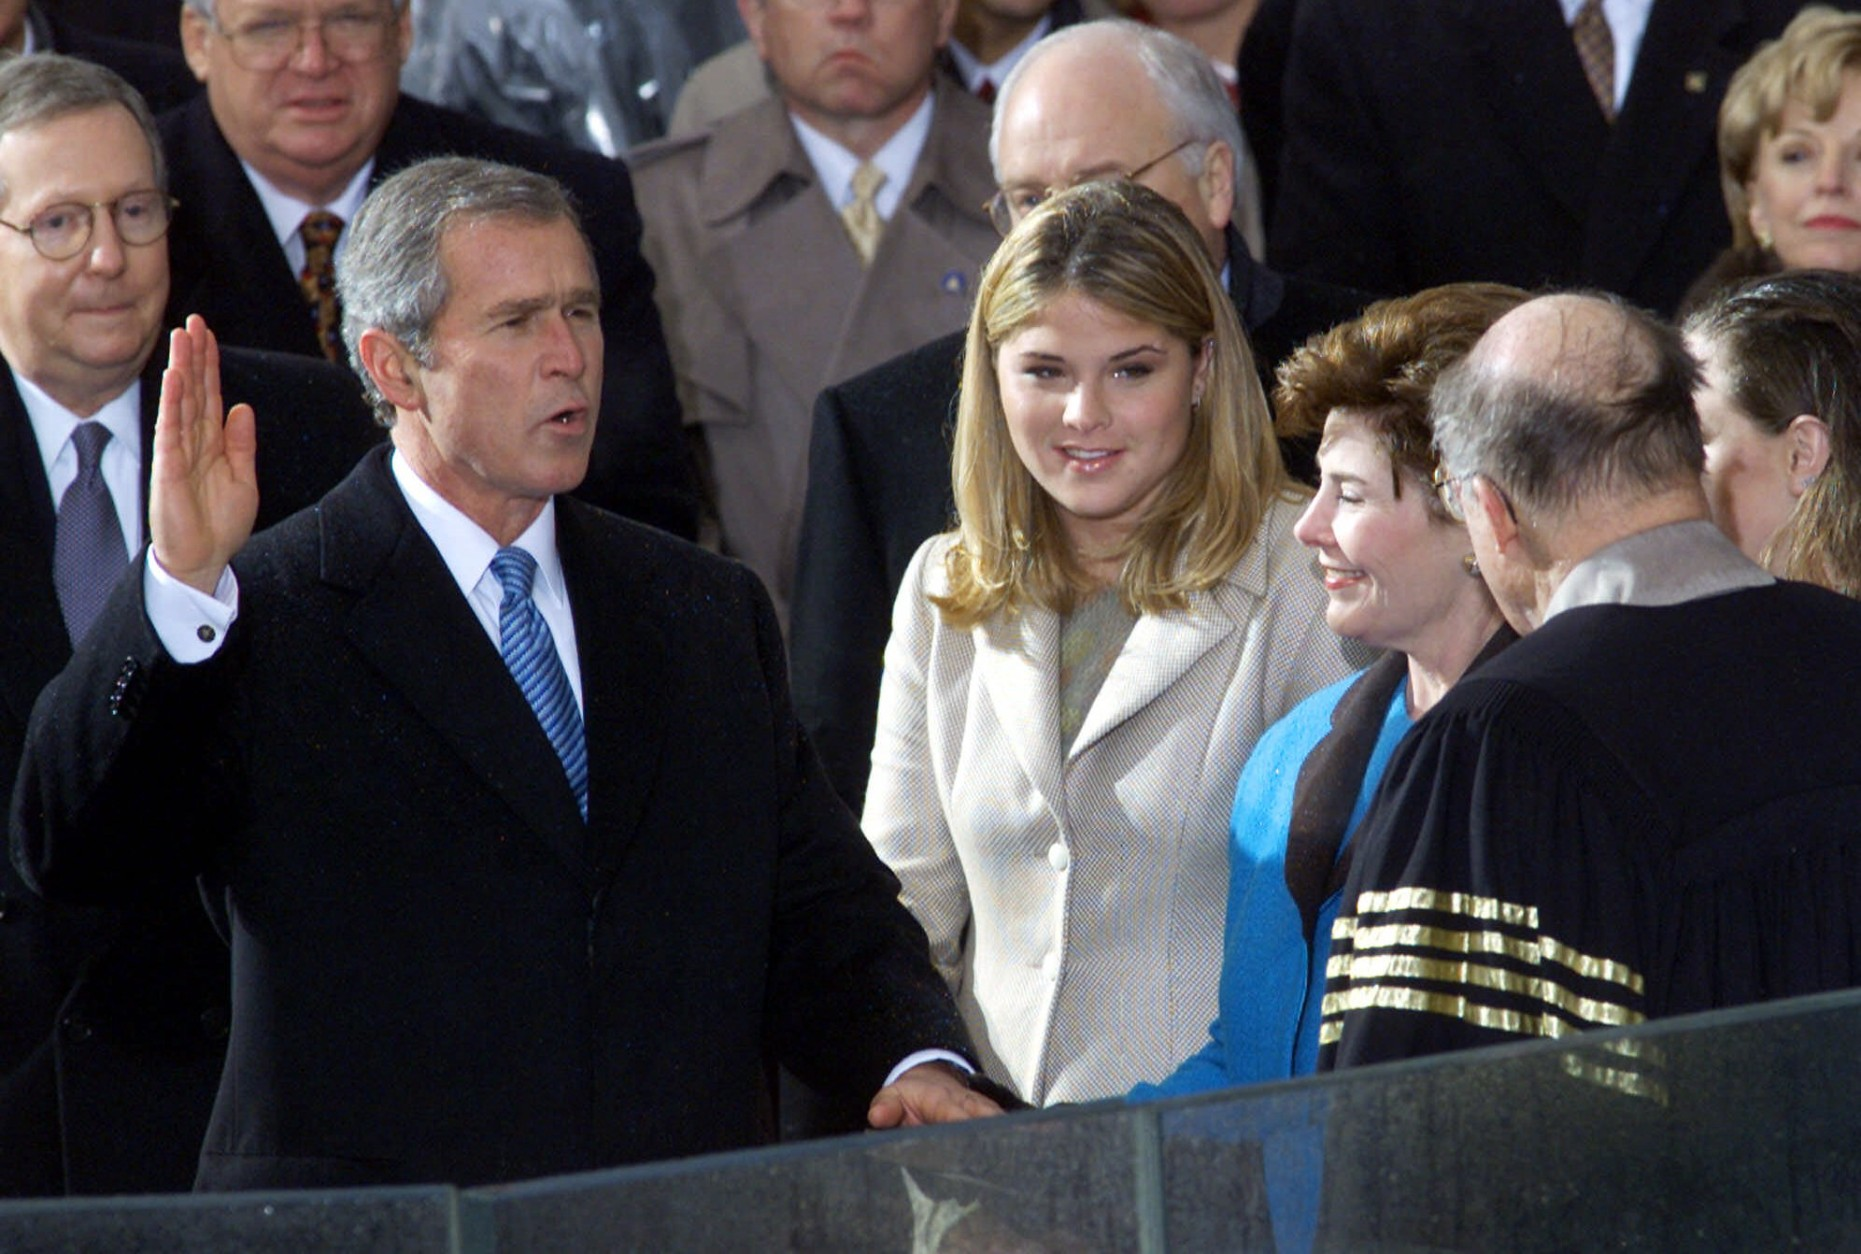 George W. Bush takes the oath of office from Chief Justice William Rehnquist to become the 43rd president Saturday, Jan. 20, 2001, in Washington. Wife Laura Bush holds the Bible and daughter Jenna watches. (AP Photo/Doug Mills)